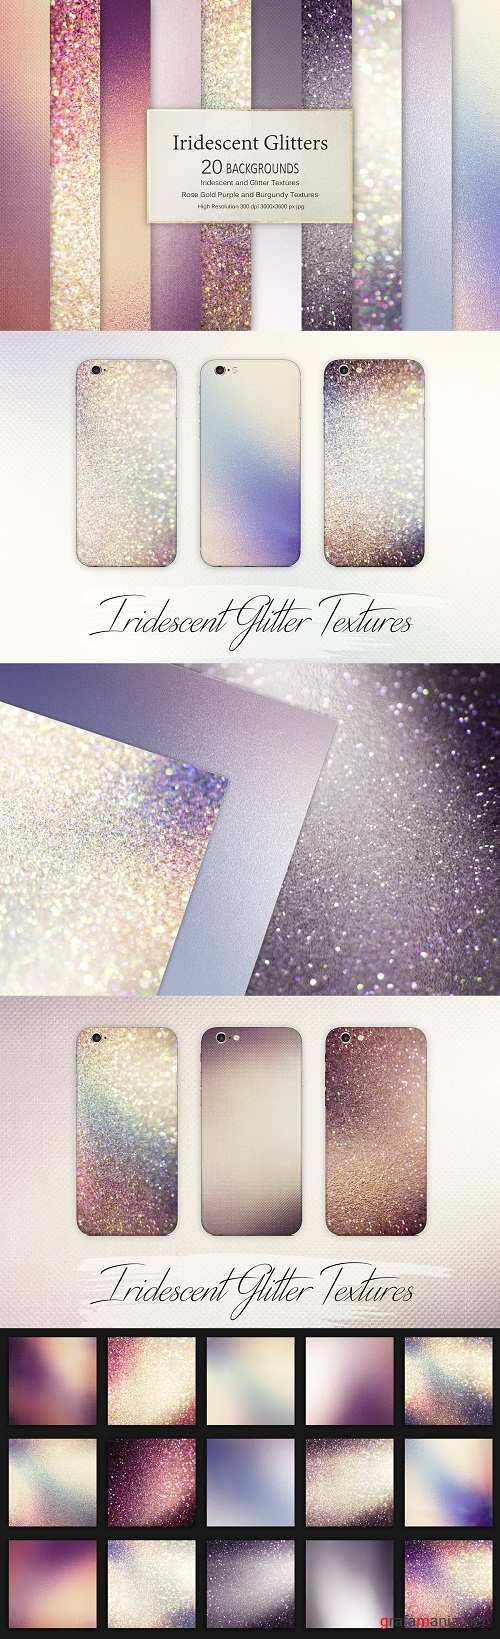 Iridescent and Glitter Textures - 2283229